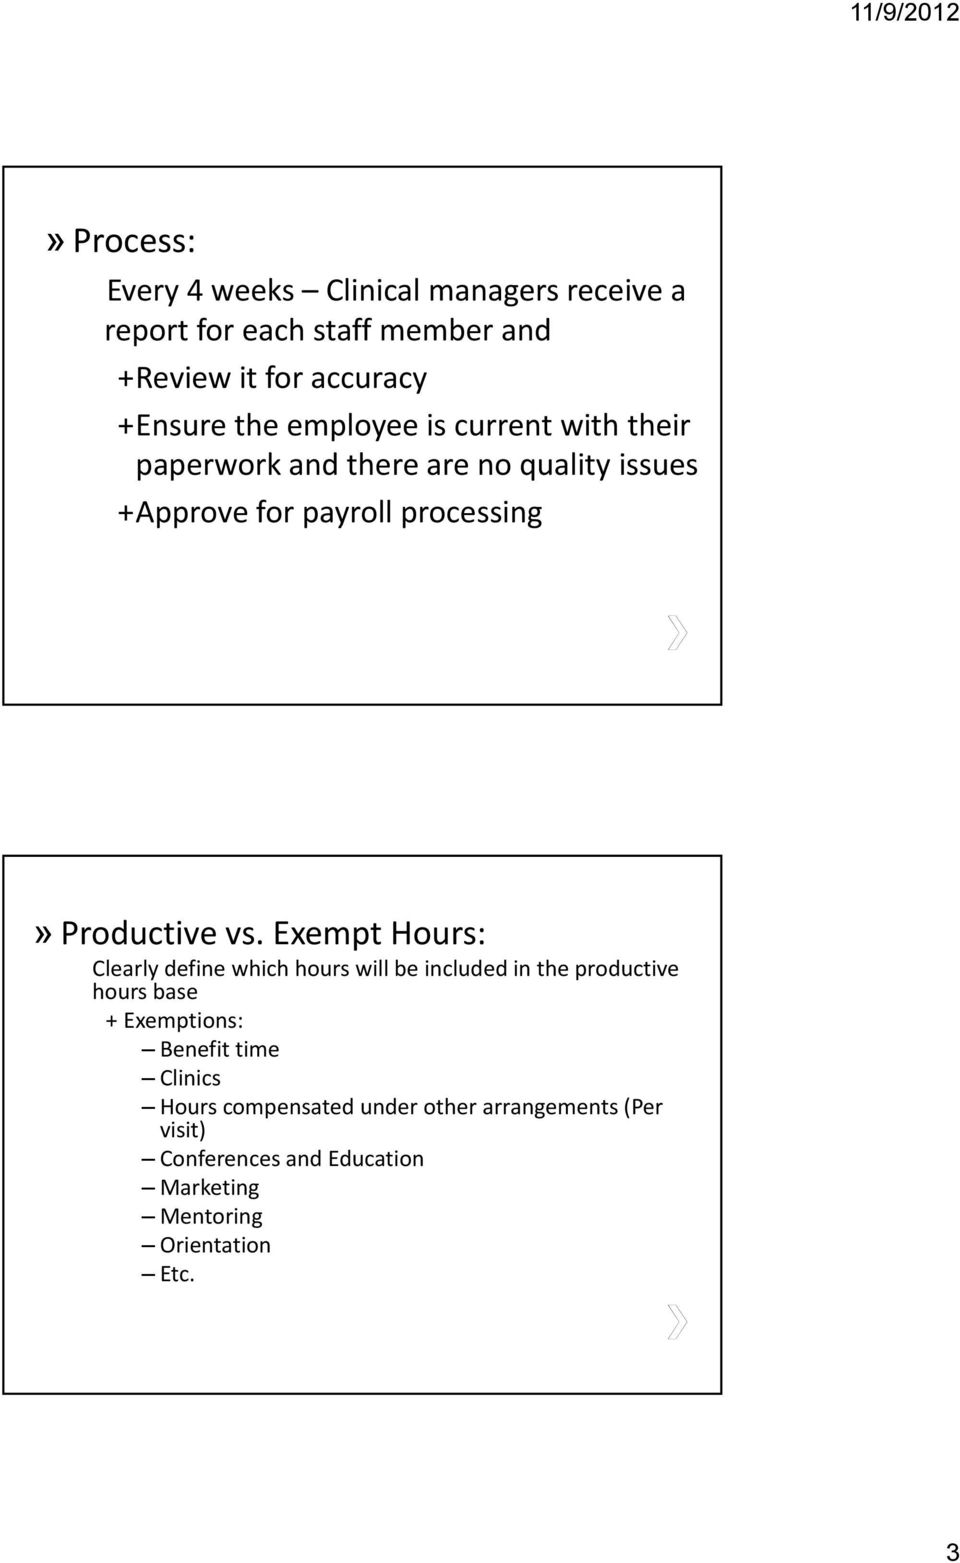 vs. Exempt Hours: Clearly define which hours will be included in the productive hours base +Exemptions: Benefit time